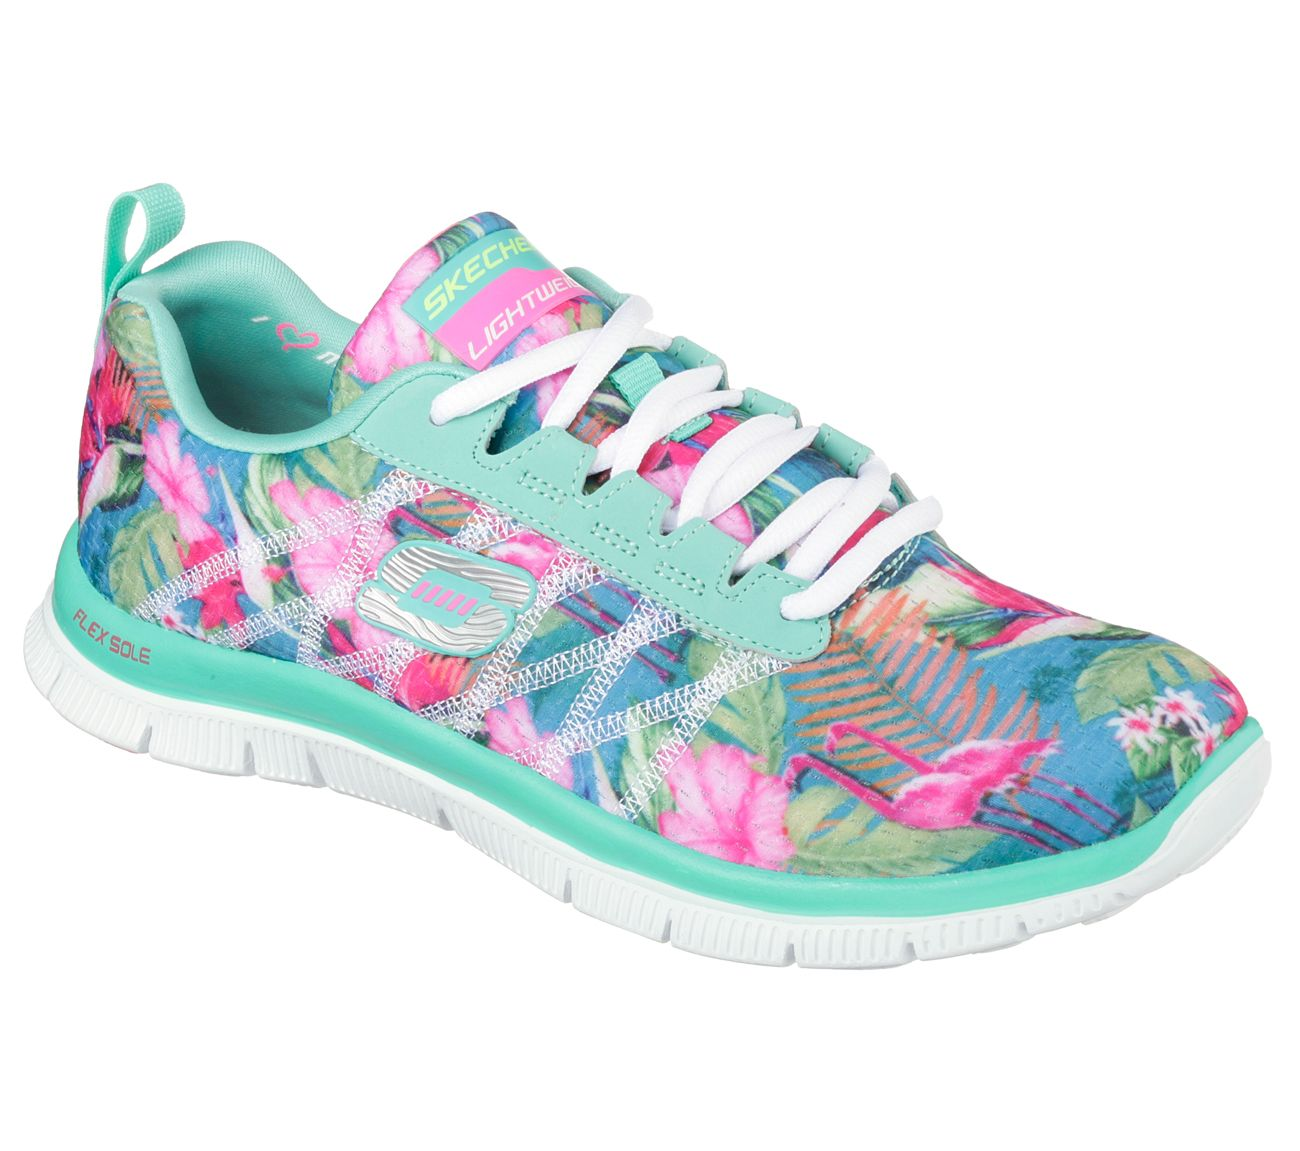 f9cbee06375f Buy SKECHERS Flex Appeal - Floral BloomTraining Shoes Shoes only  72.00